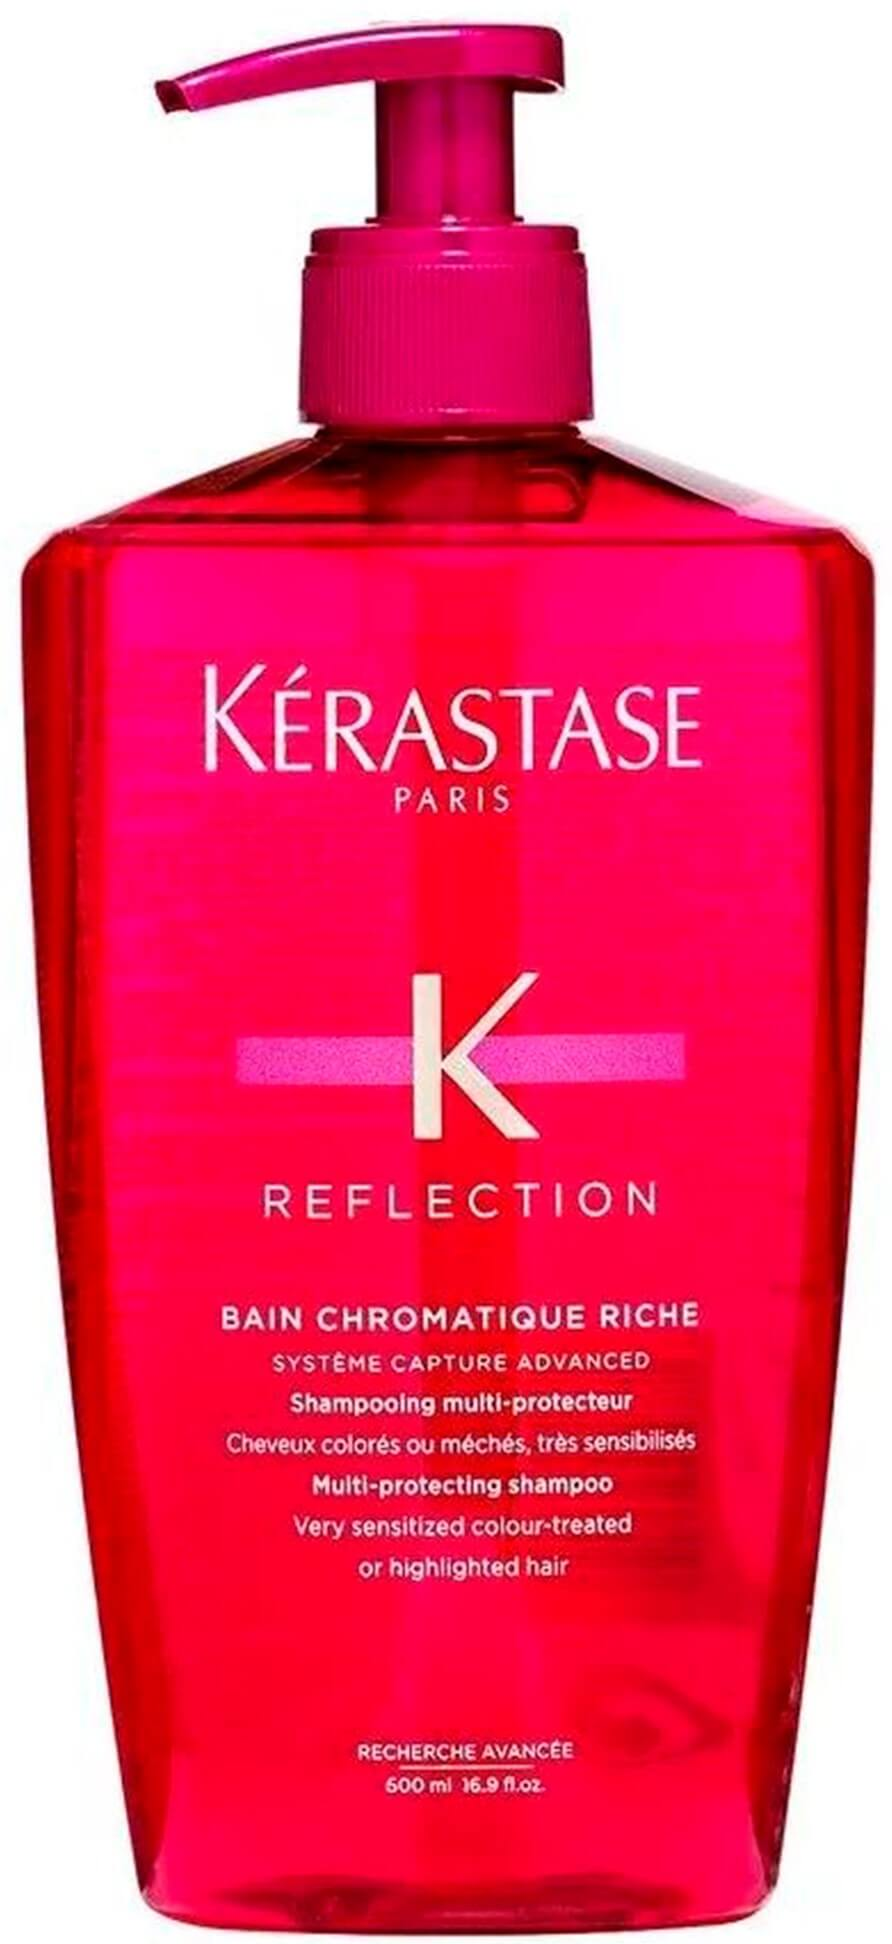 Shampoo Kérastase Réflection Bain Chromatique Riche - 500ml